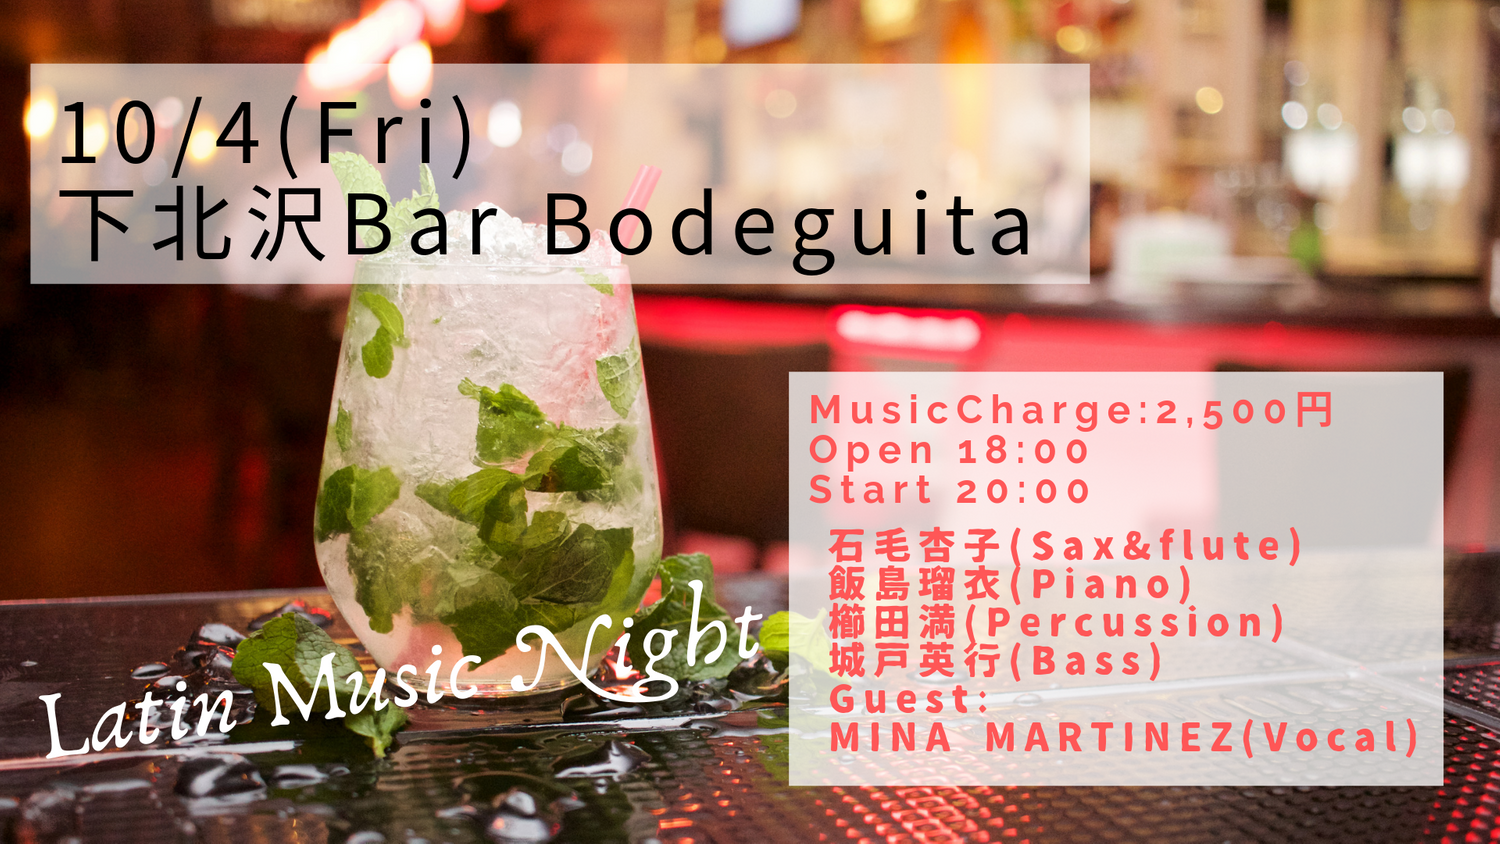 Latin Music Night @ 下北沢Bar Bodeguita